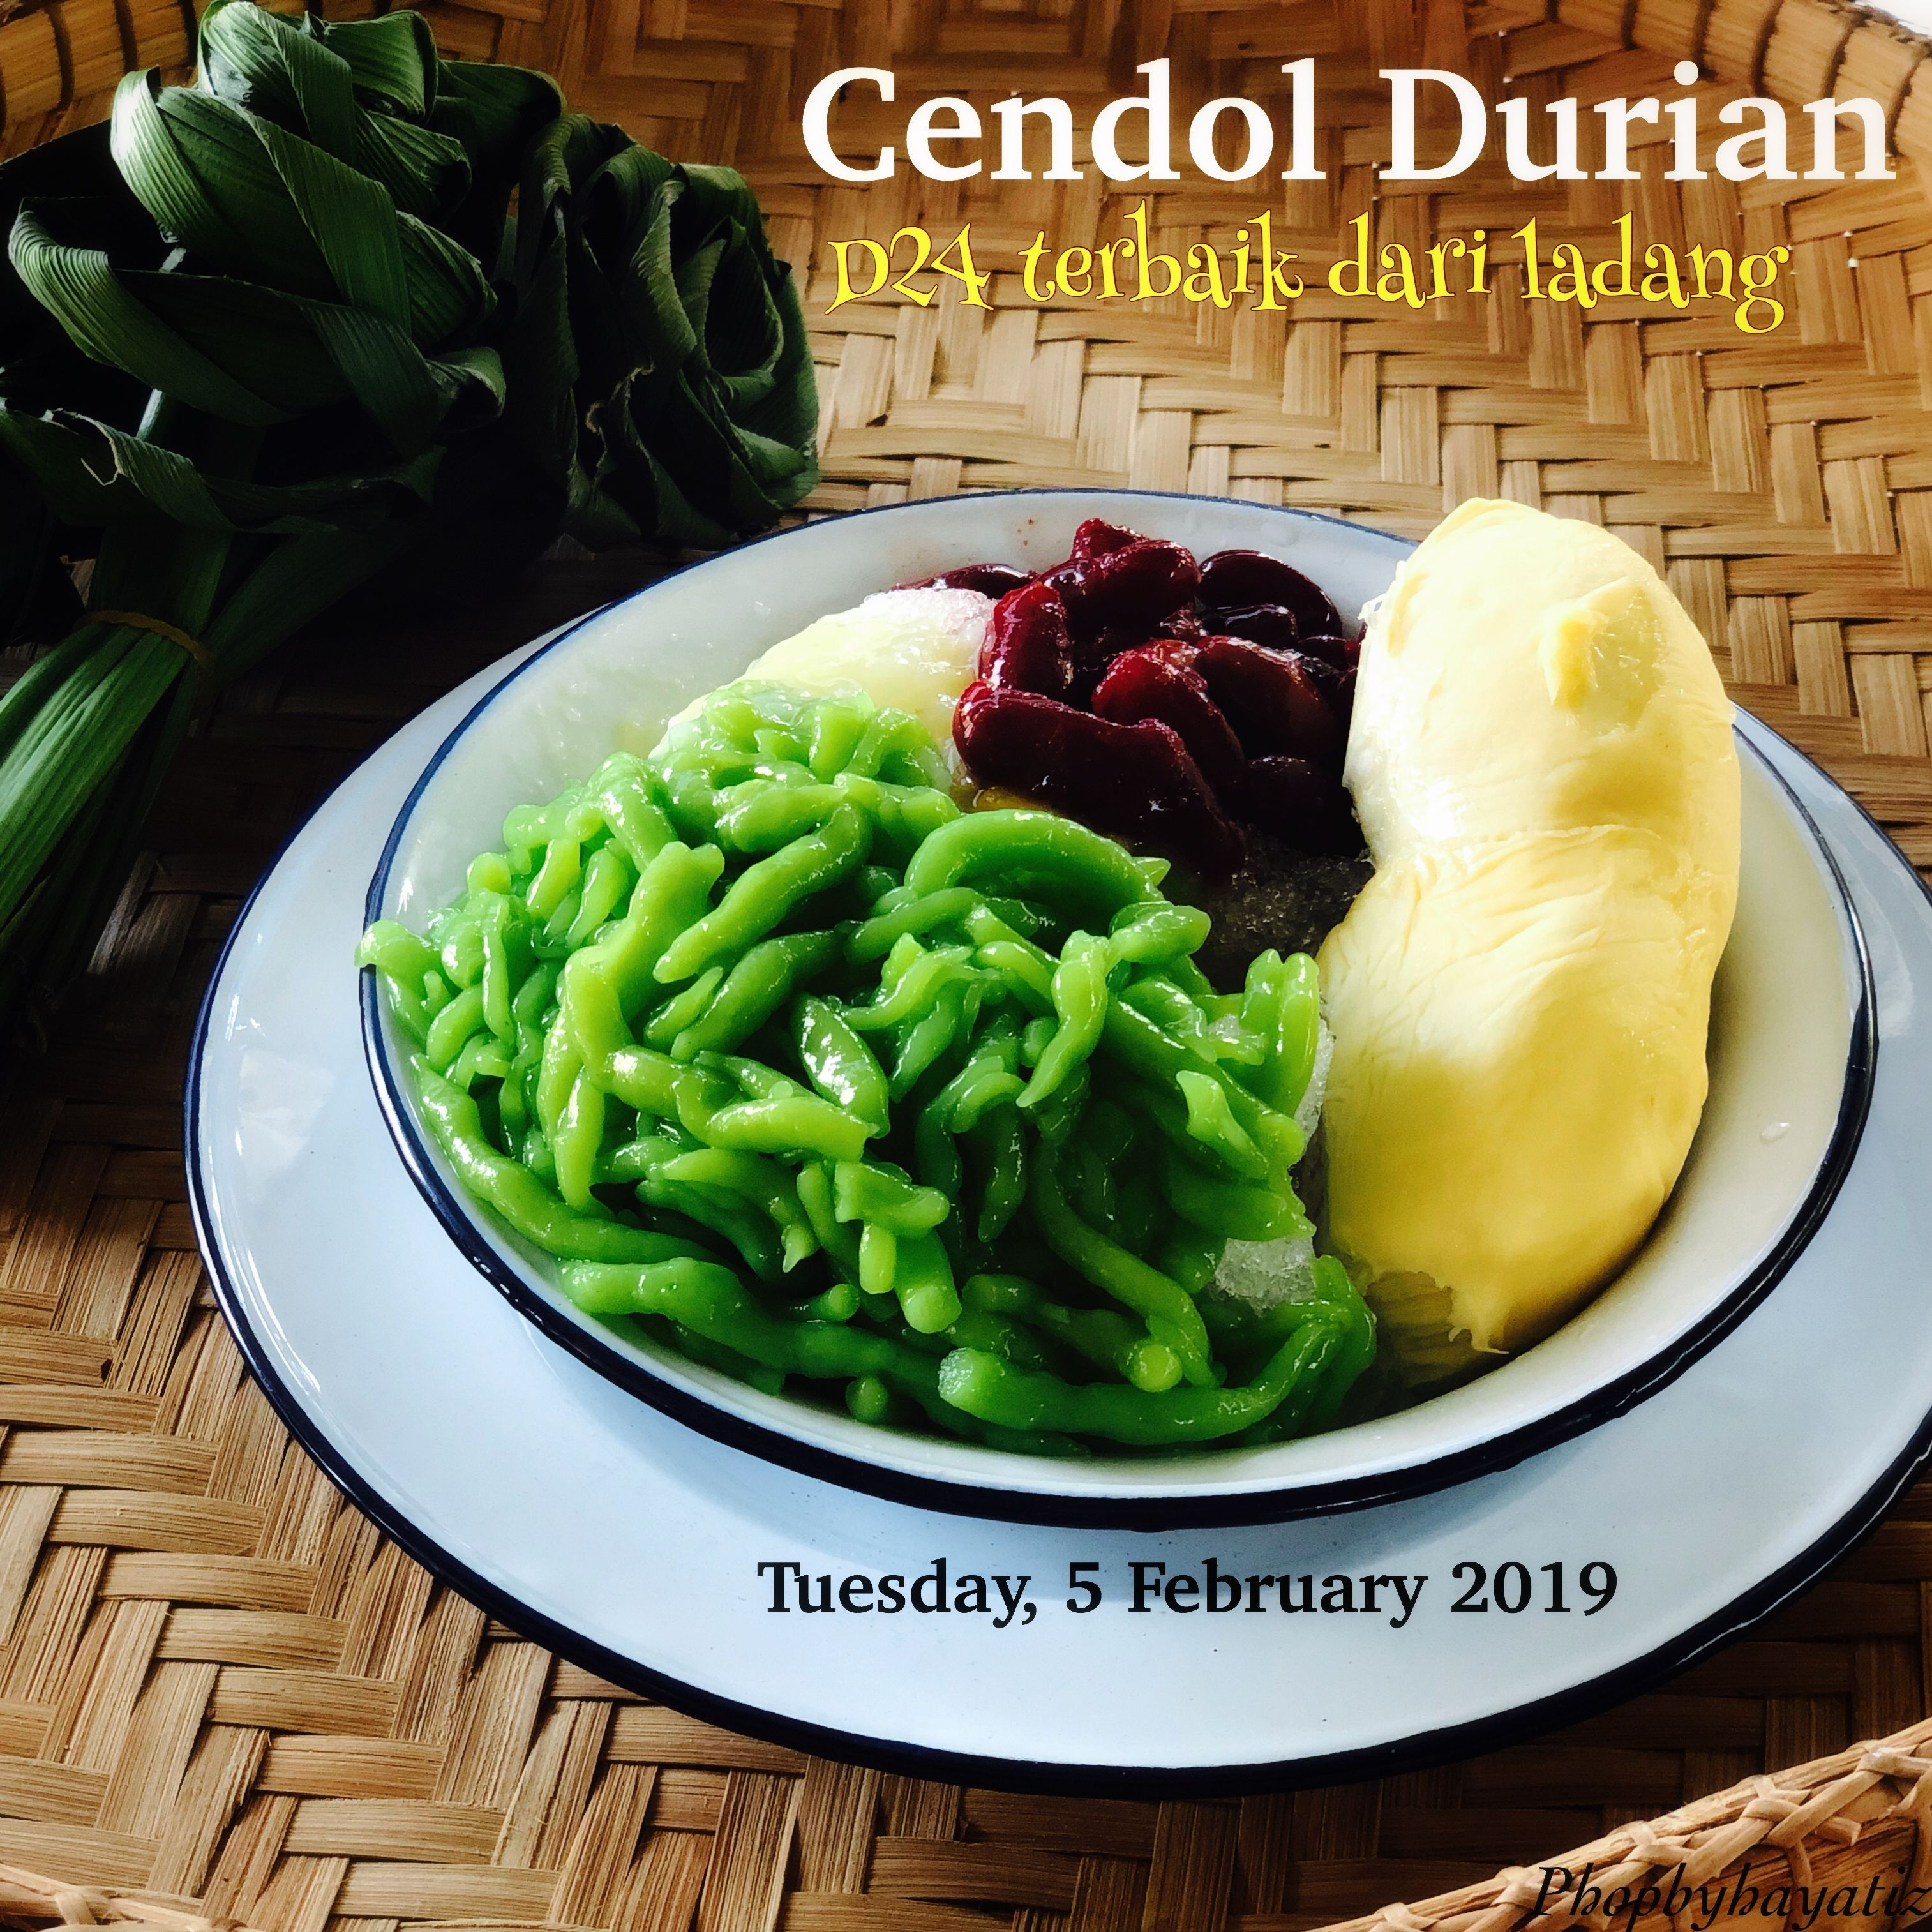 Cendol Durian Durian Food Vegetables